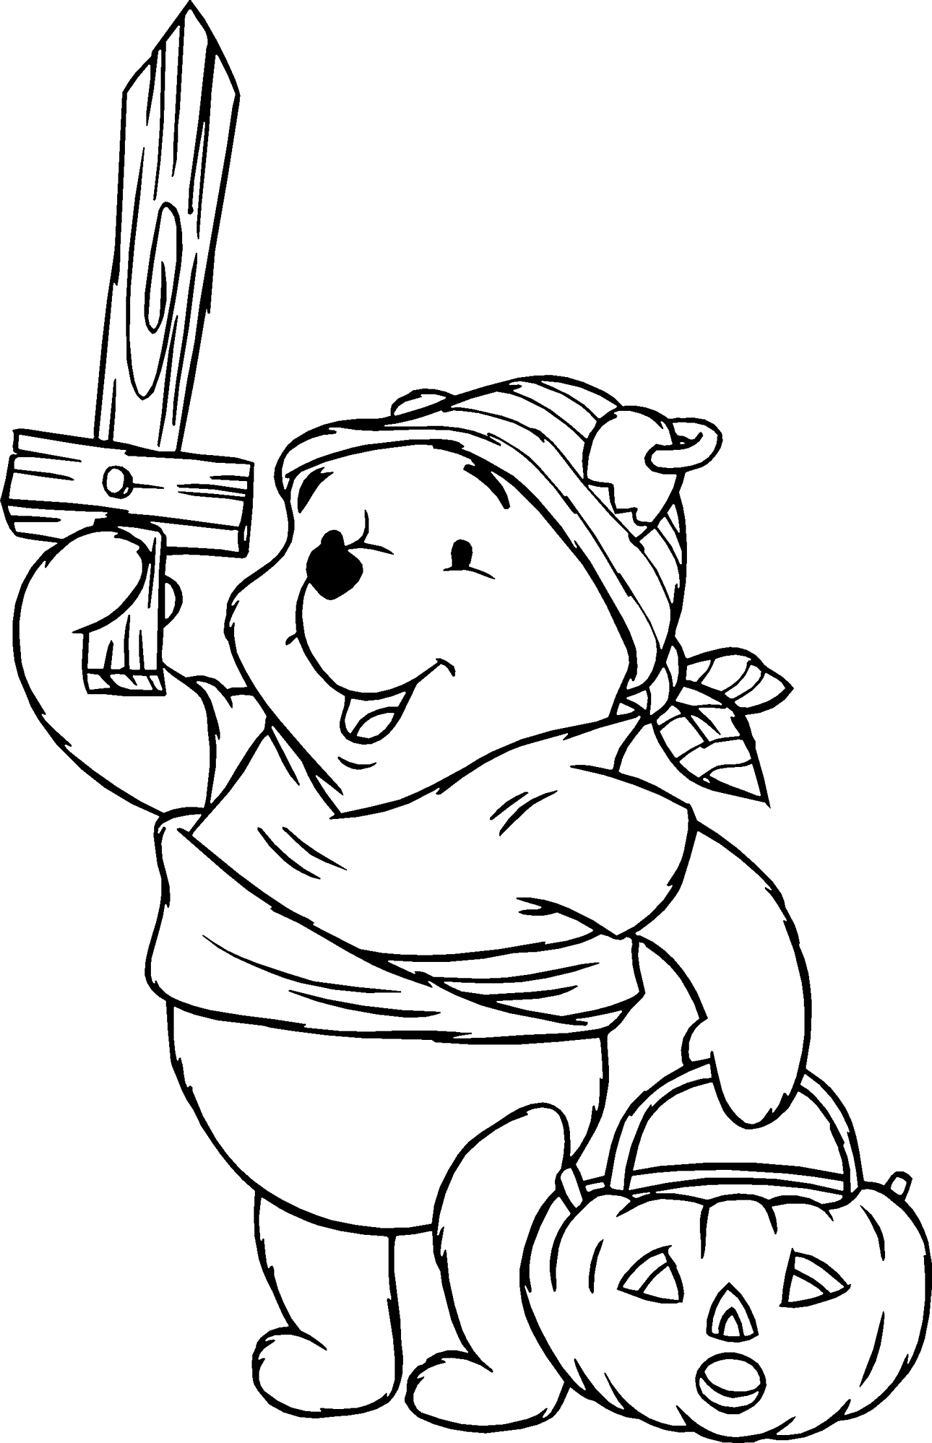 the pooh halloween coloring pages - photo#2